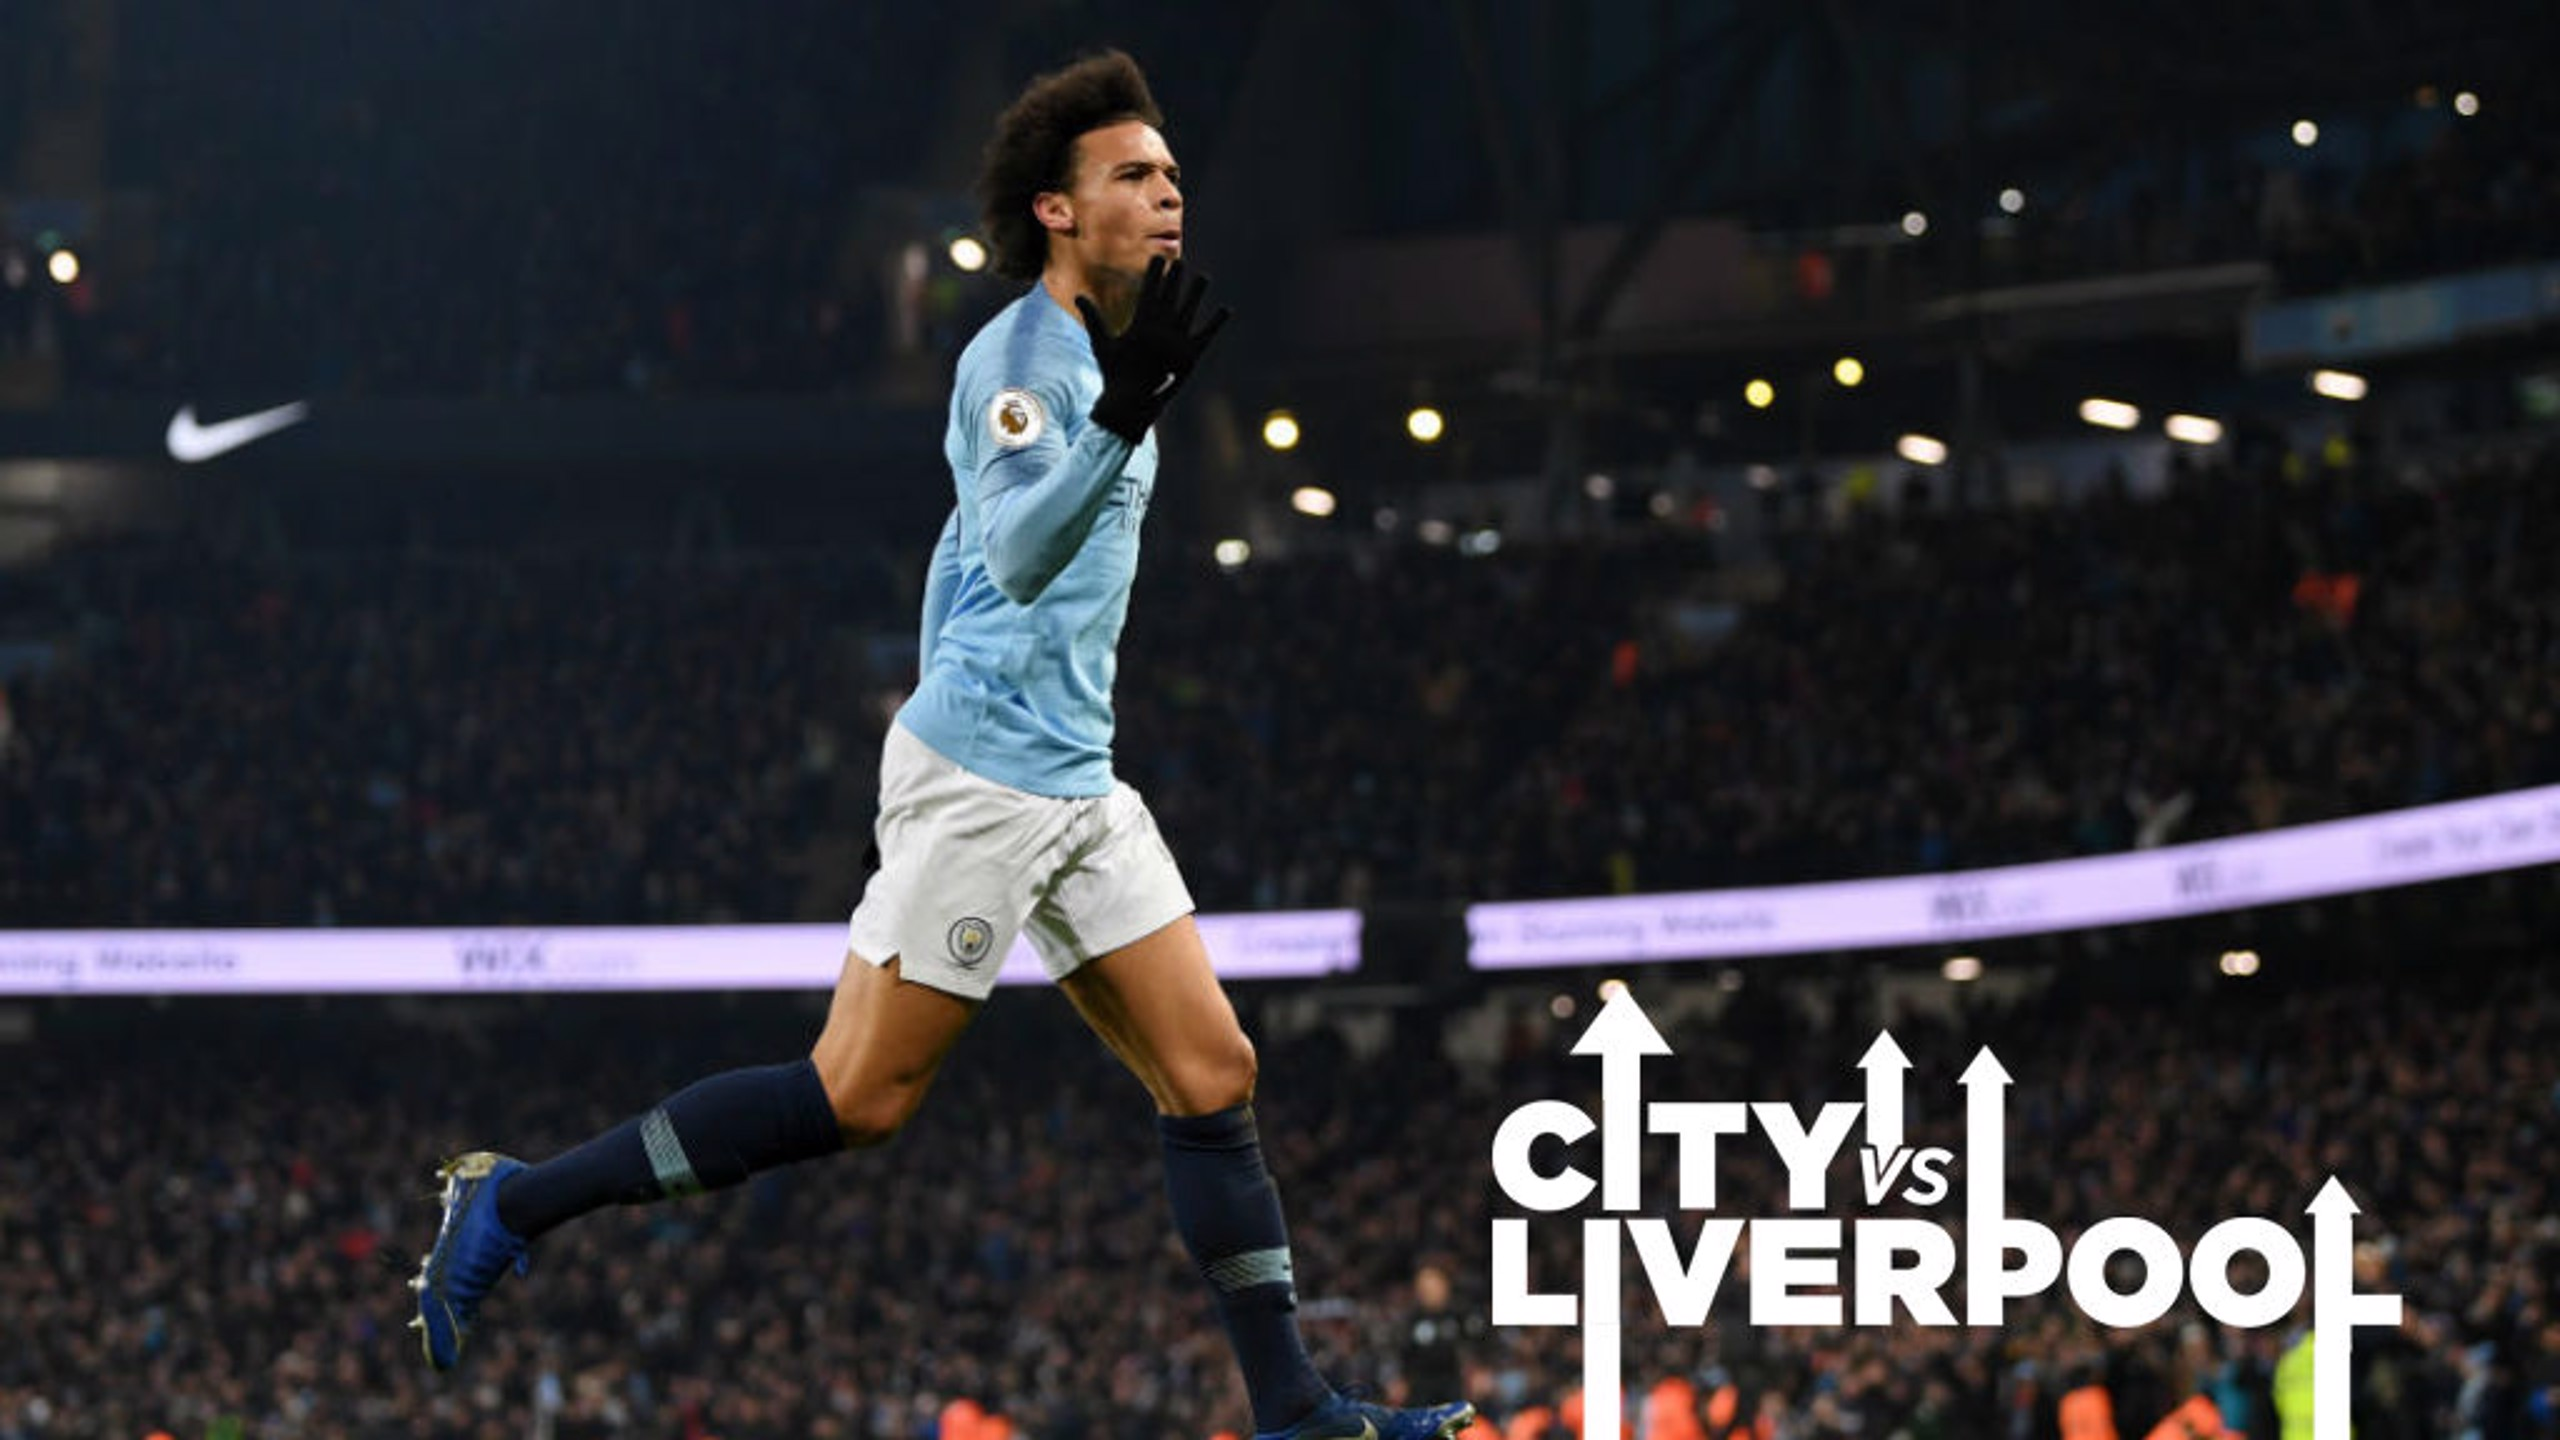 MOMENT TO SAVOUR: Leroy Sane celebrates his stunning winner over Liverpool